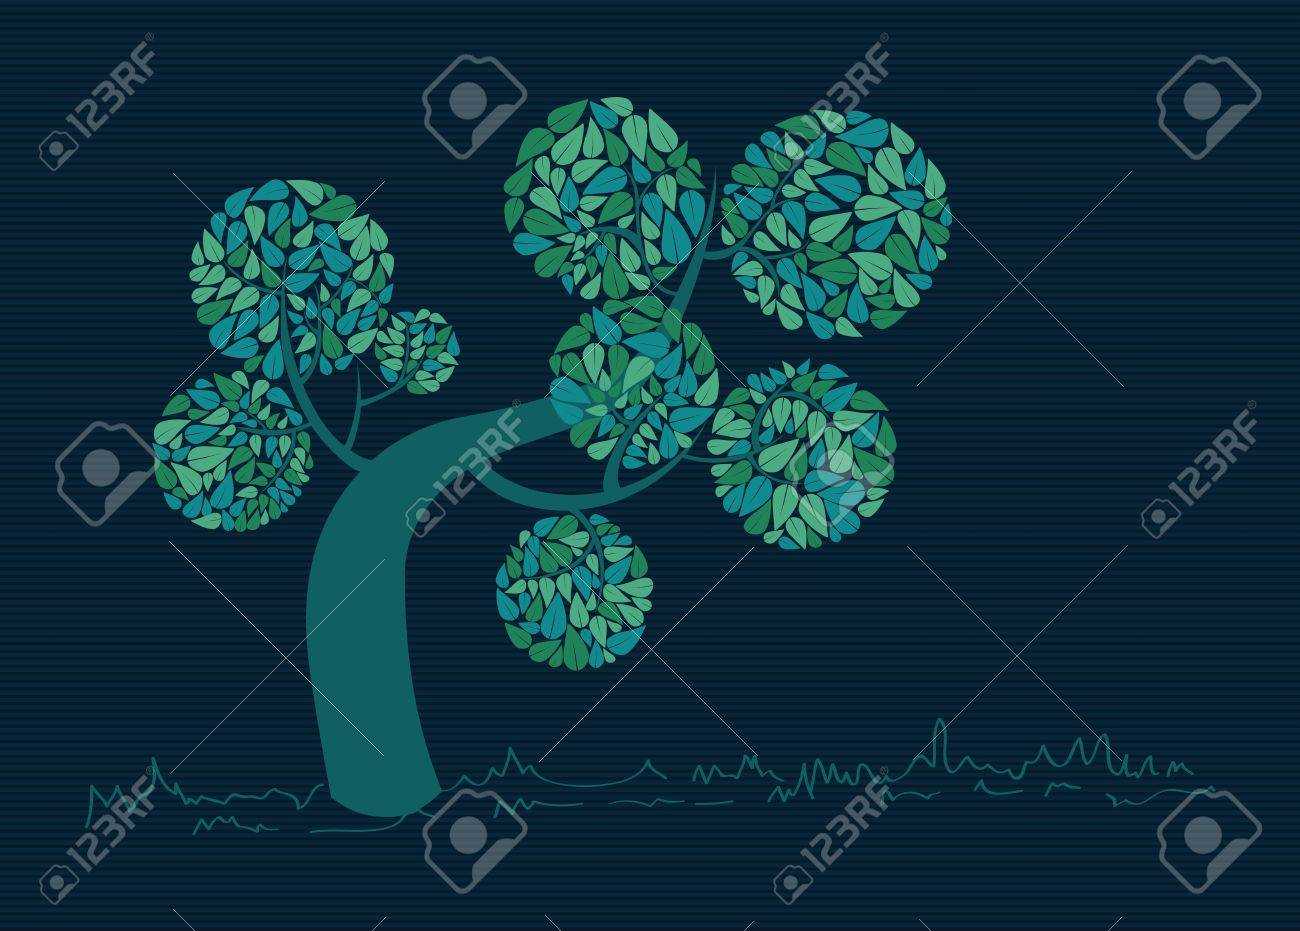 Blue branches leaf tree stripes background design. Stock Vector - 20607368